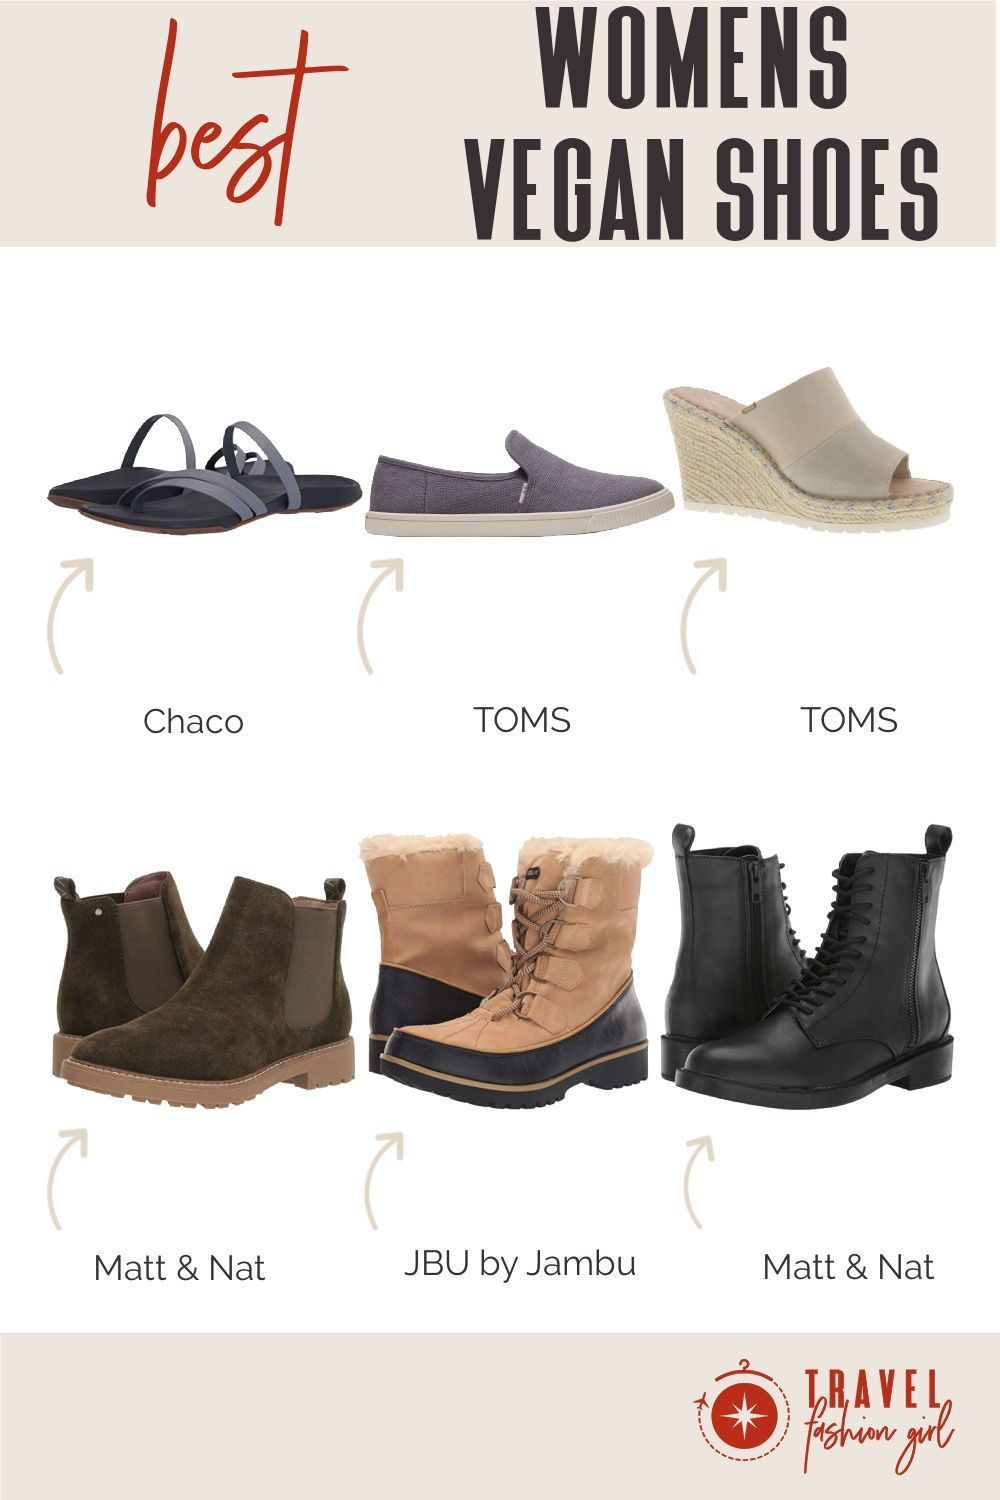 Best Vegan Shoes for Women: Check Out